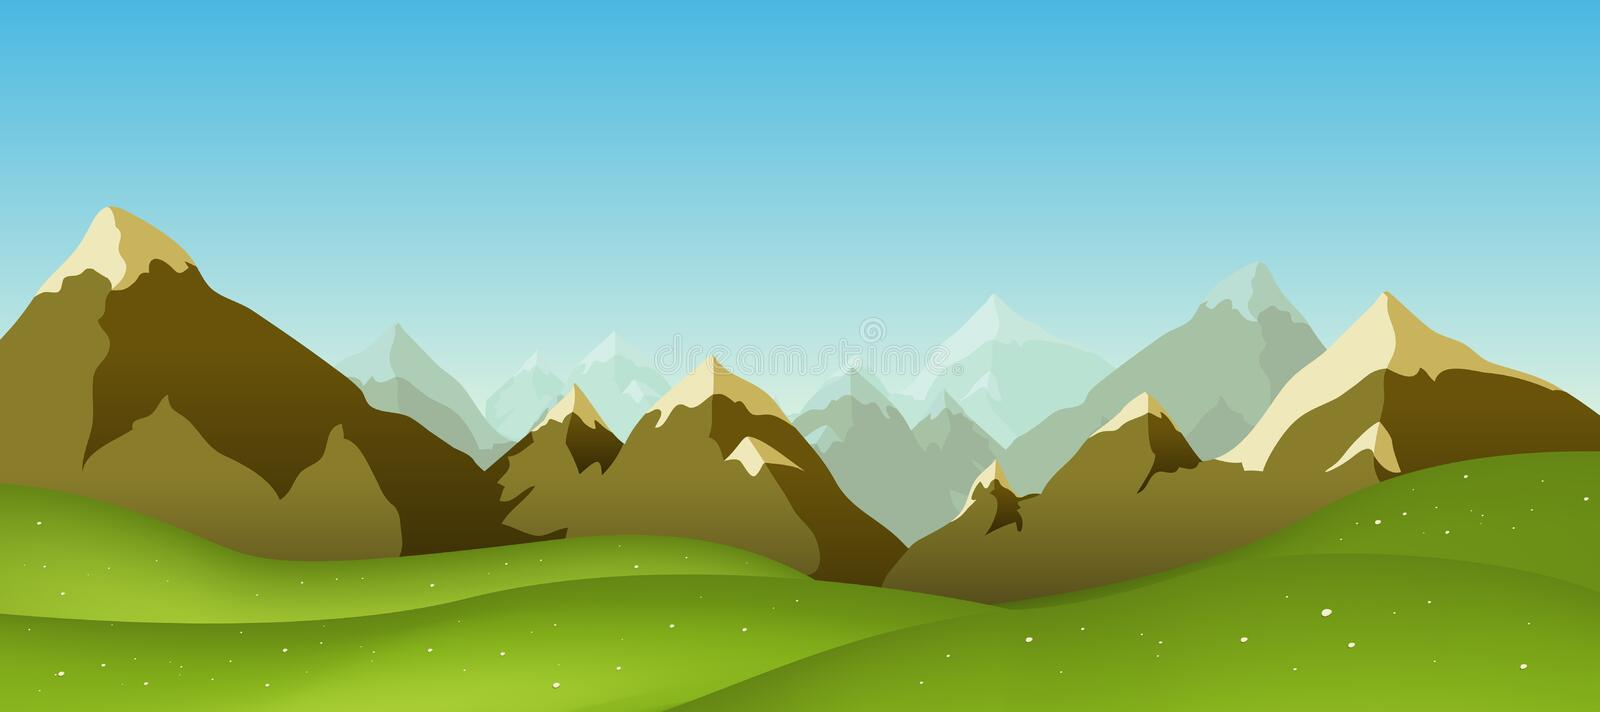 Mountain Range vector illustration